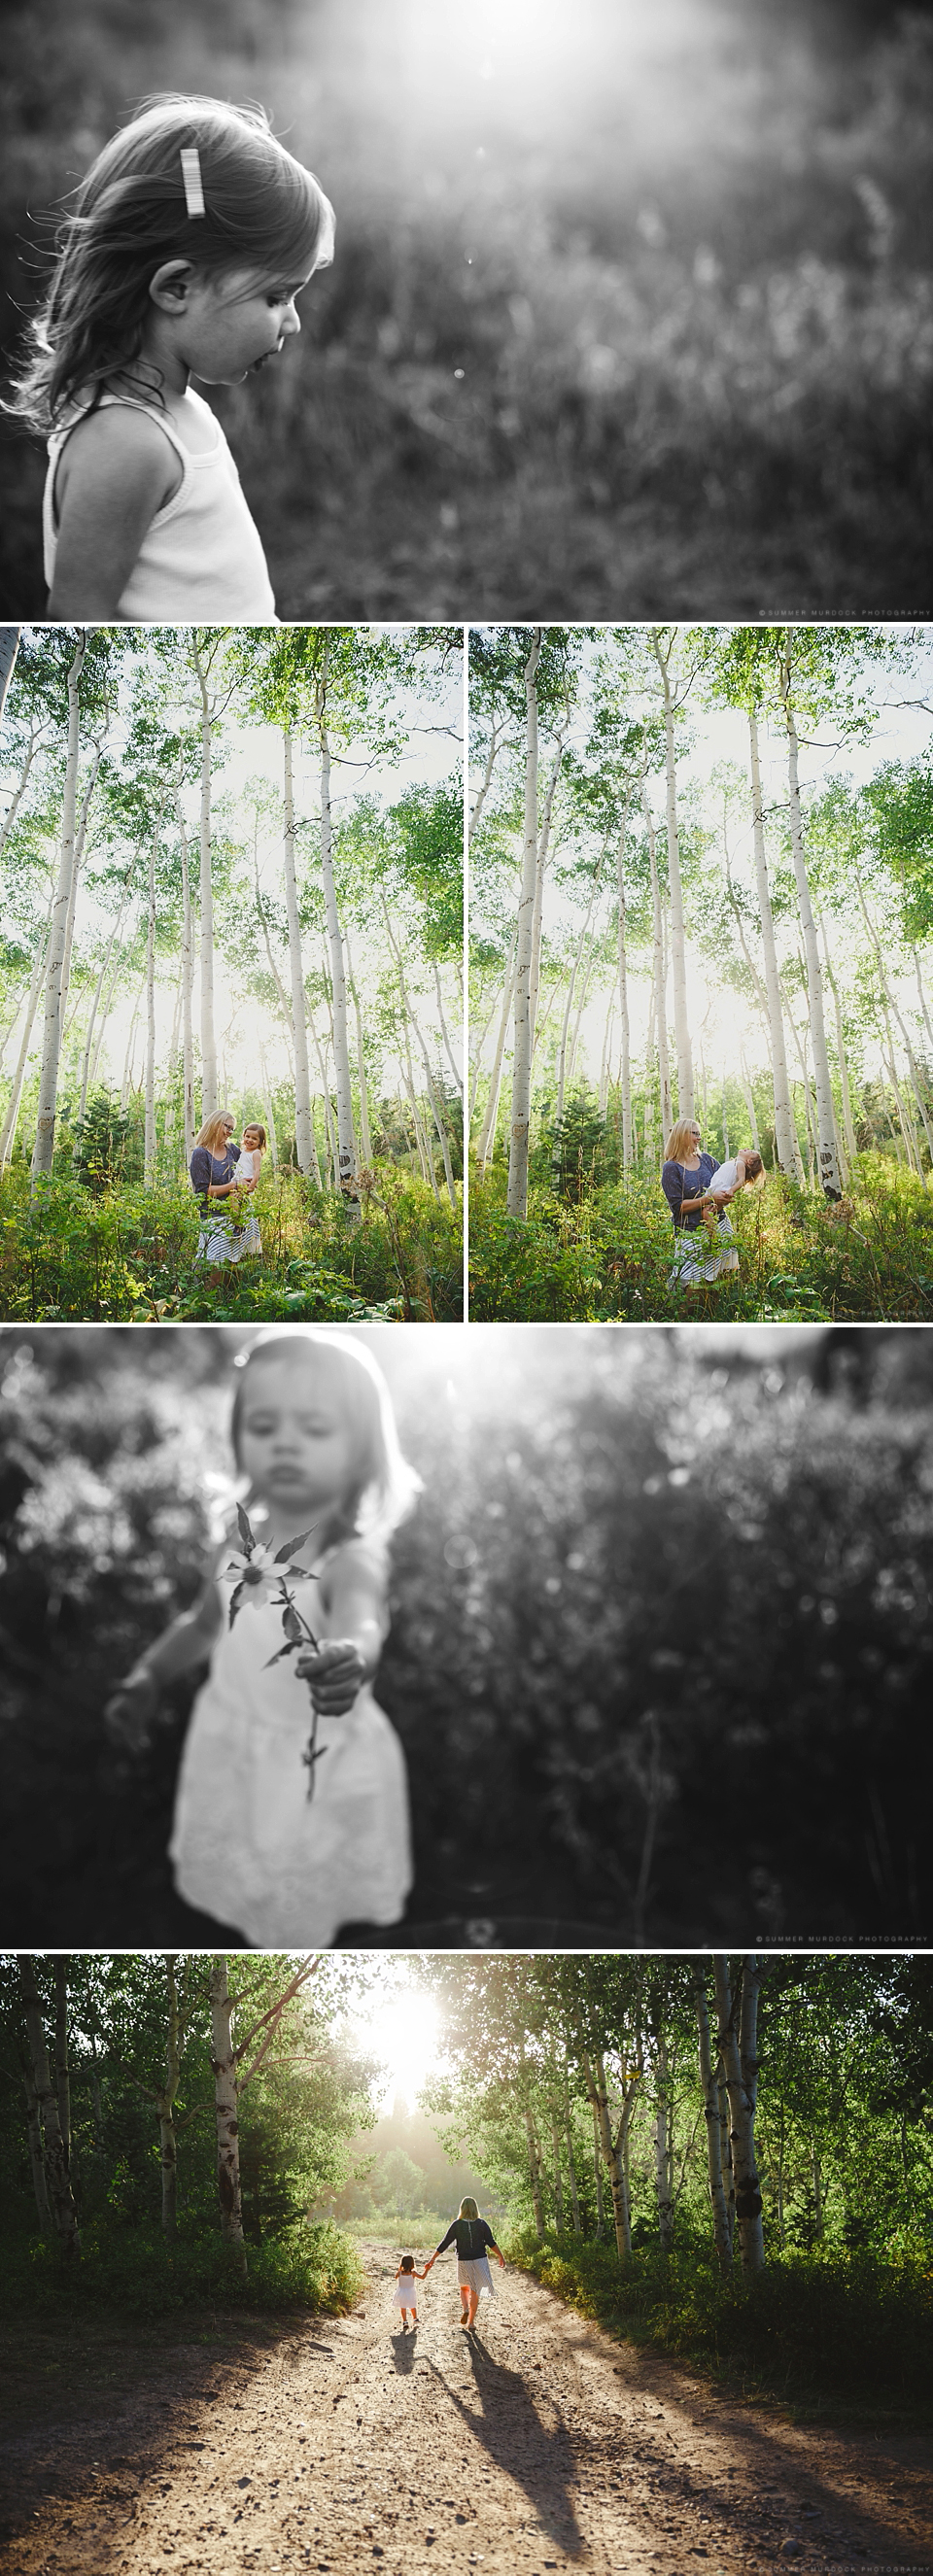 It's always super flattering when people spend a bit of time with me while they are on vacation. These two were here from Seattle and we got to spend a bit of time up in the gorgeous Utah mountains. It was really fun to do a mommy daughter shoot!